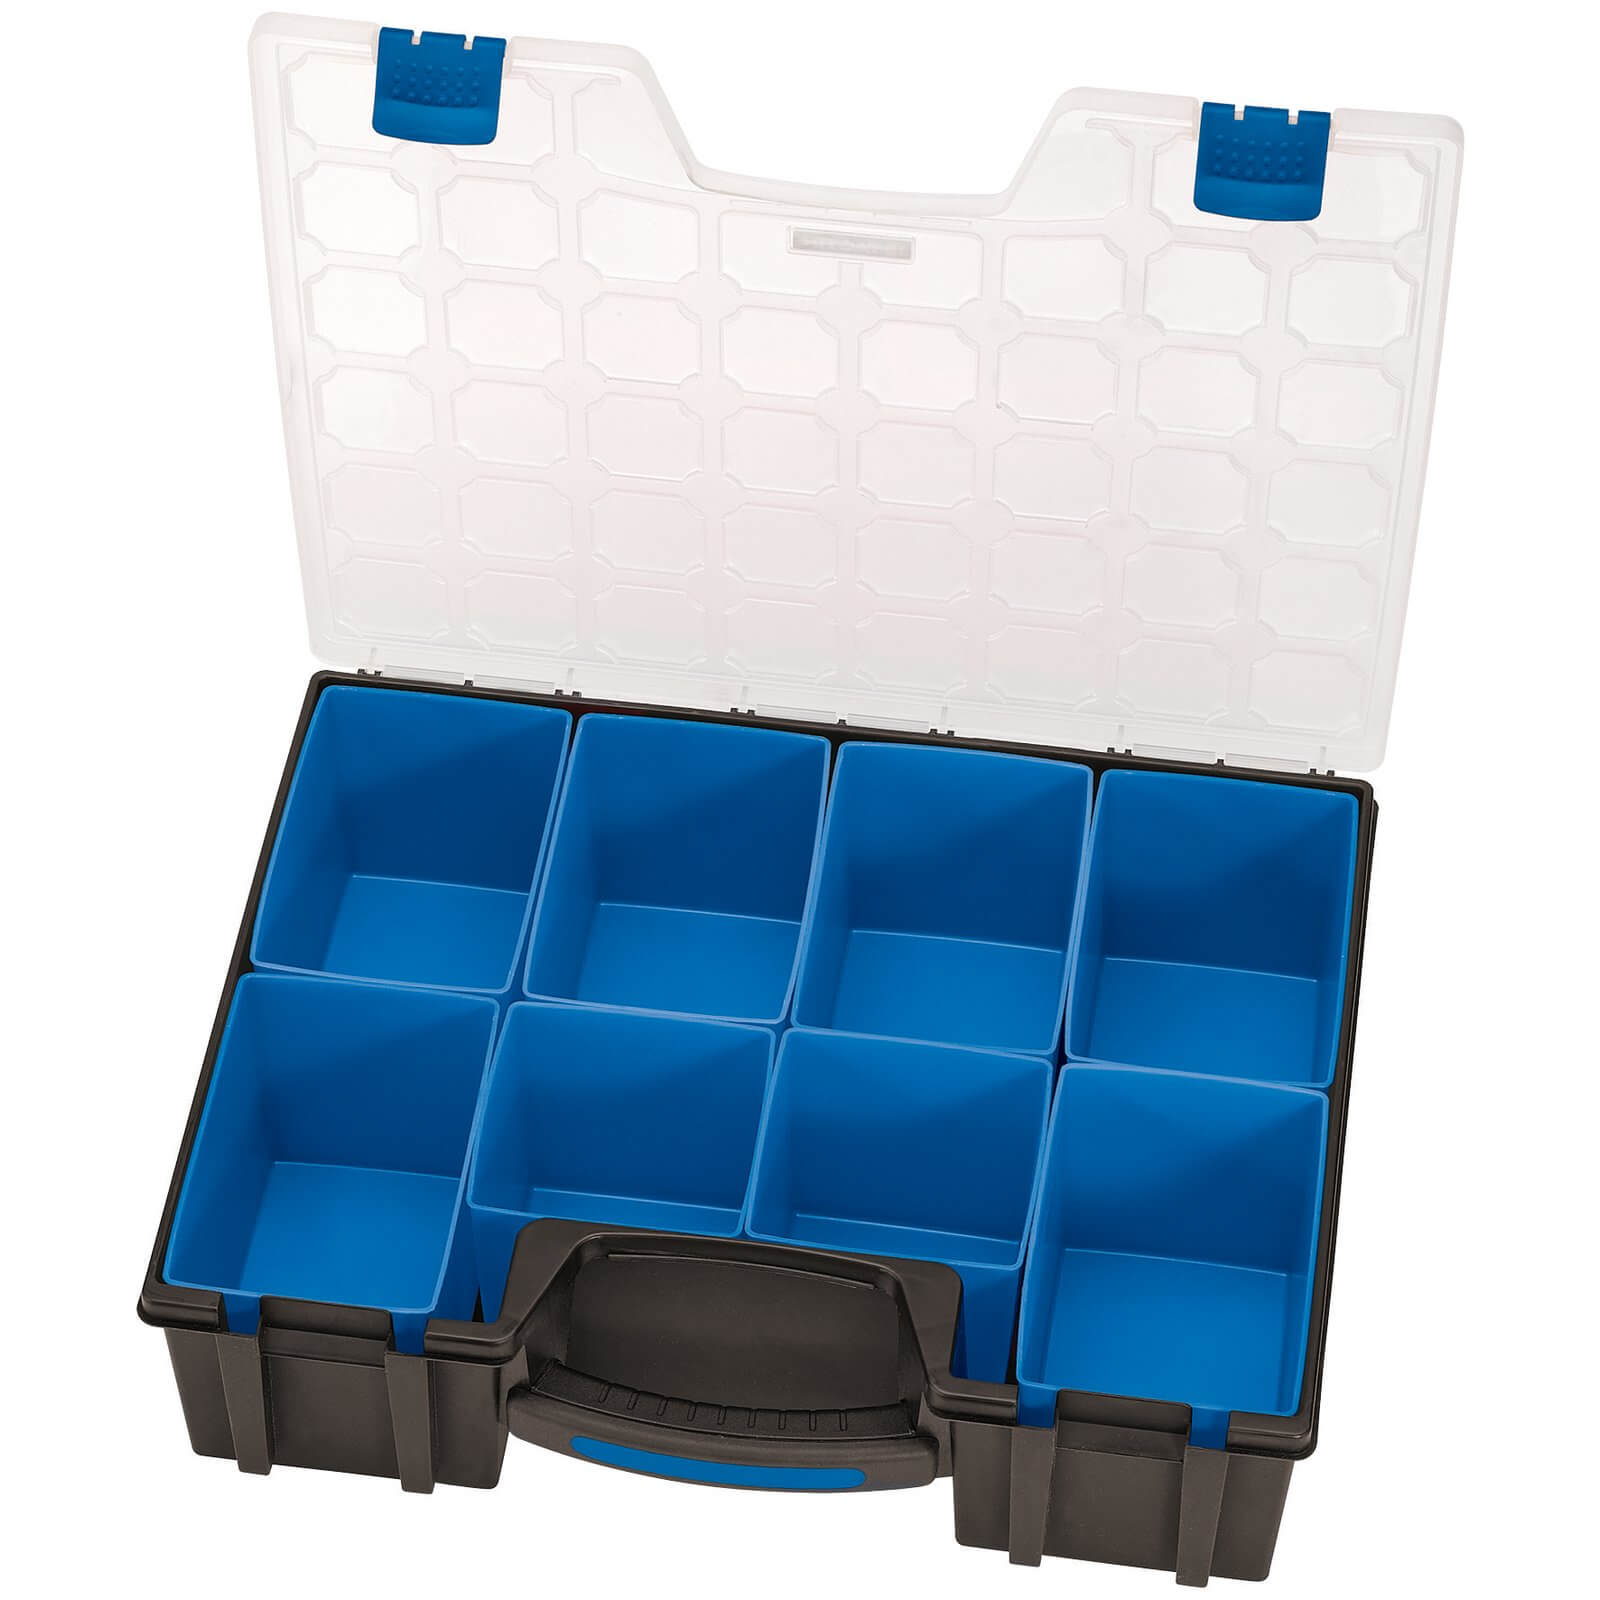 Image of Draper 8 Compartment Plastic Organiser